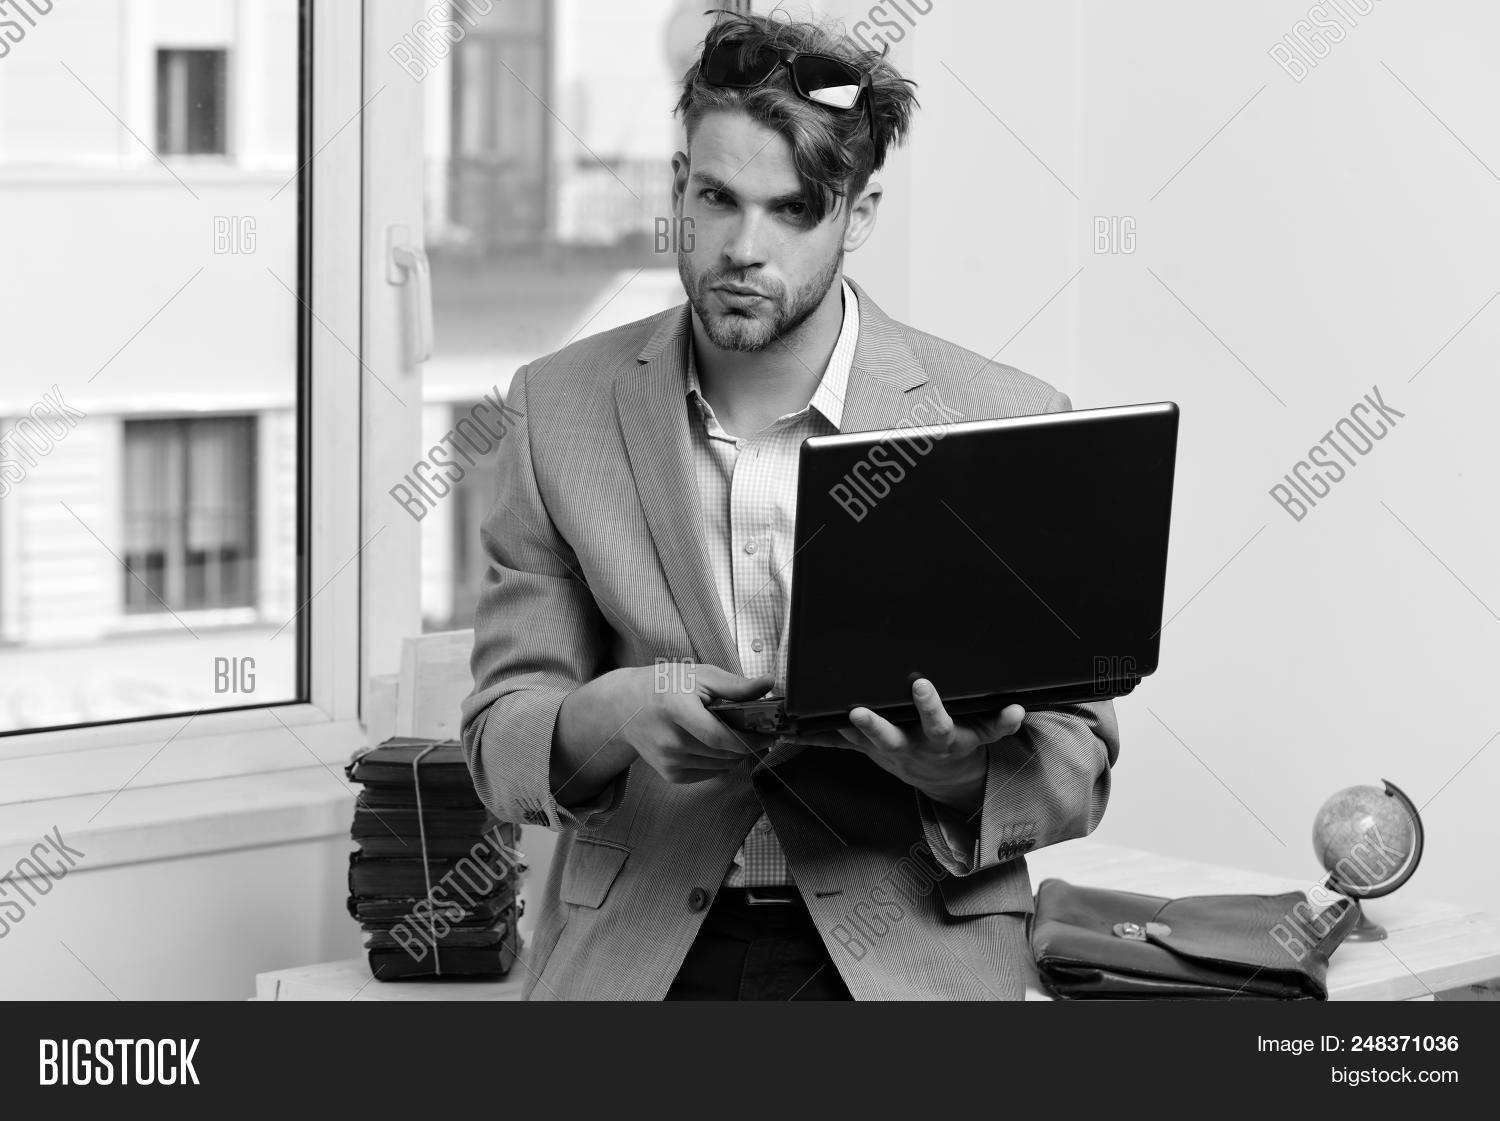 Magnificent Cool Guy Sits On Table Image Photo Free Trial Bigstock Download Free Architecture Designs Rallybritishbridgeorg